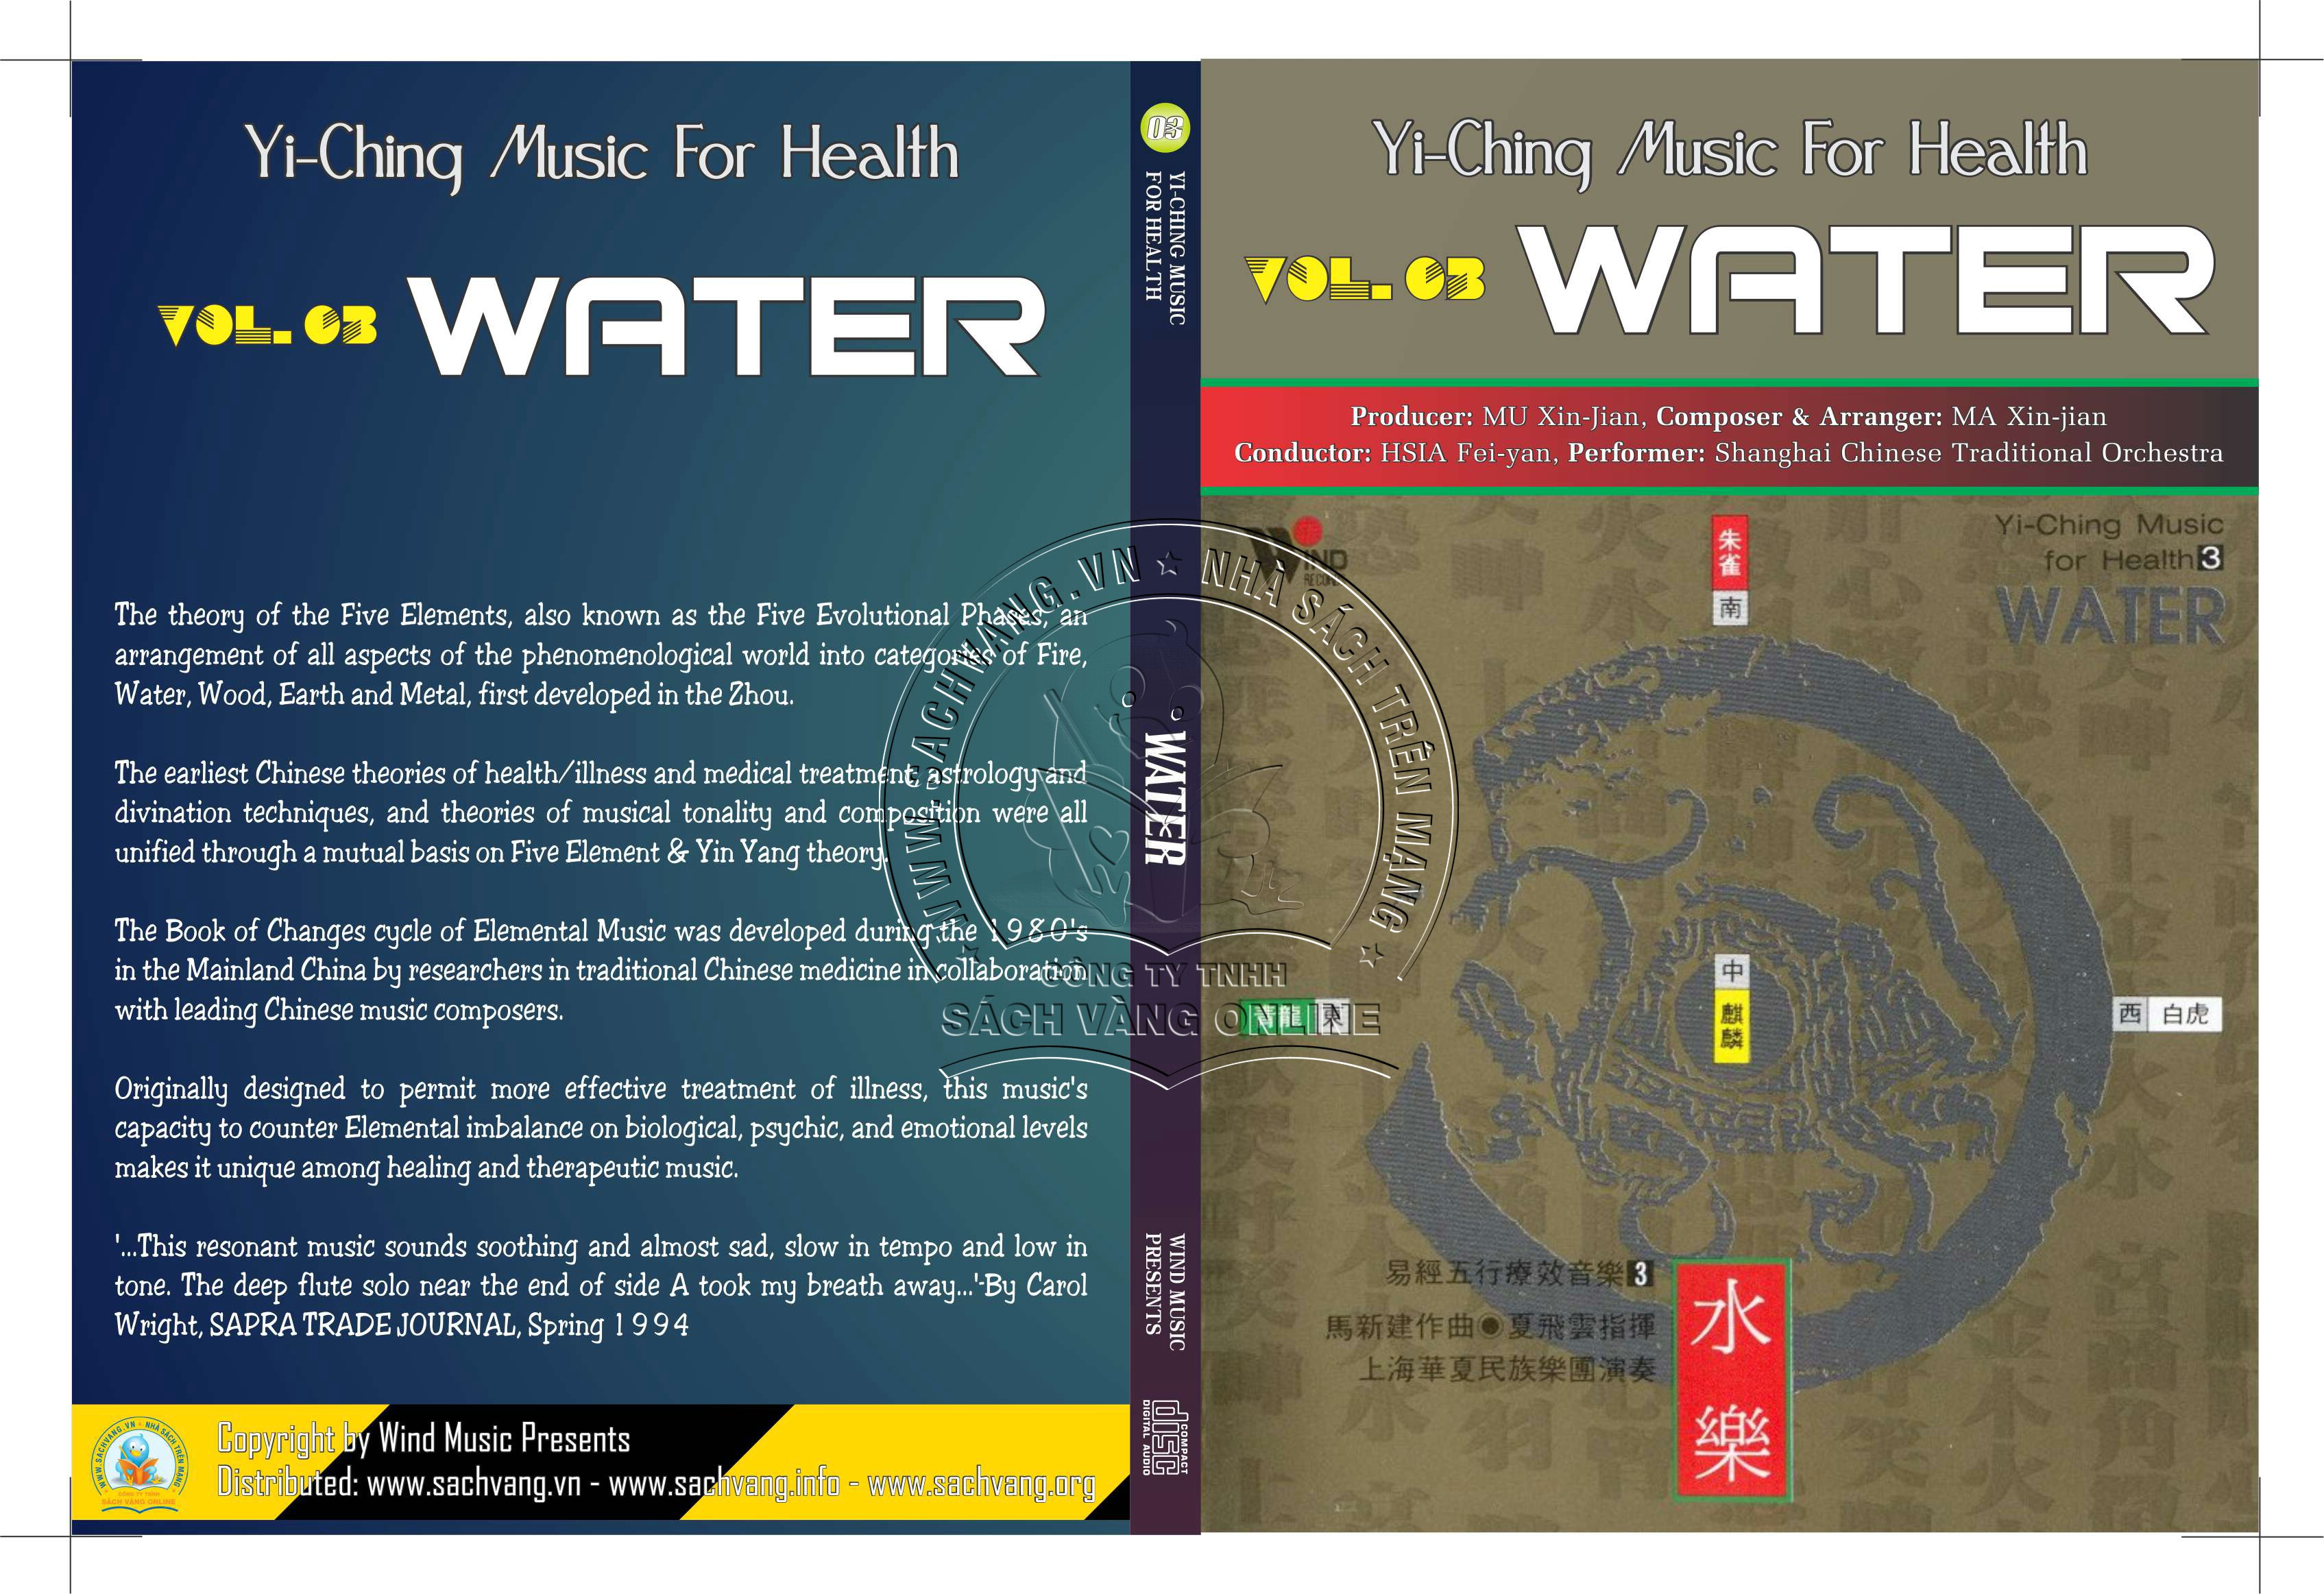 03-Yi-Ching Music For Health - Water